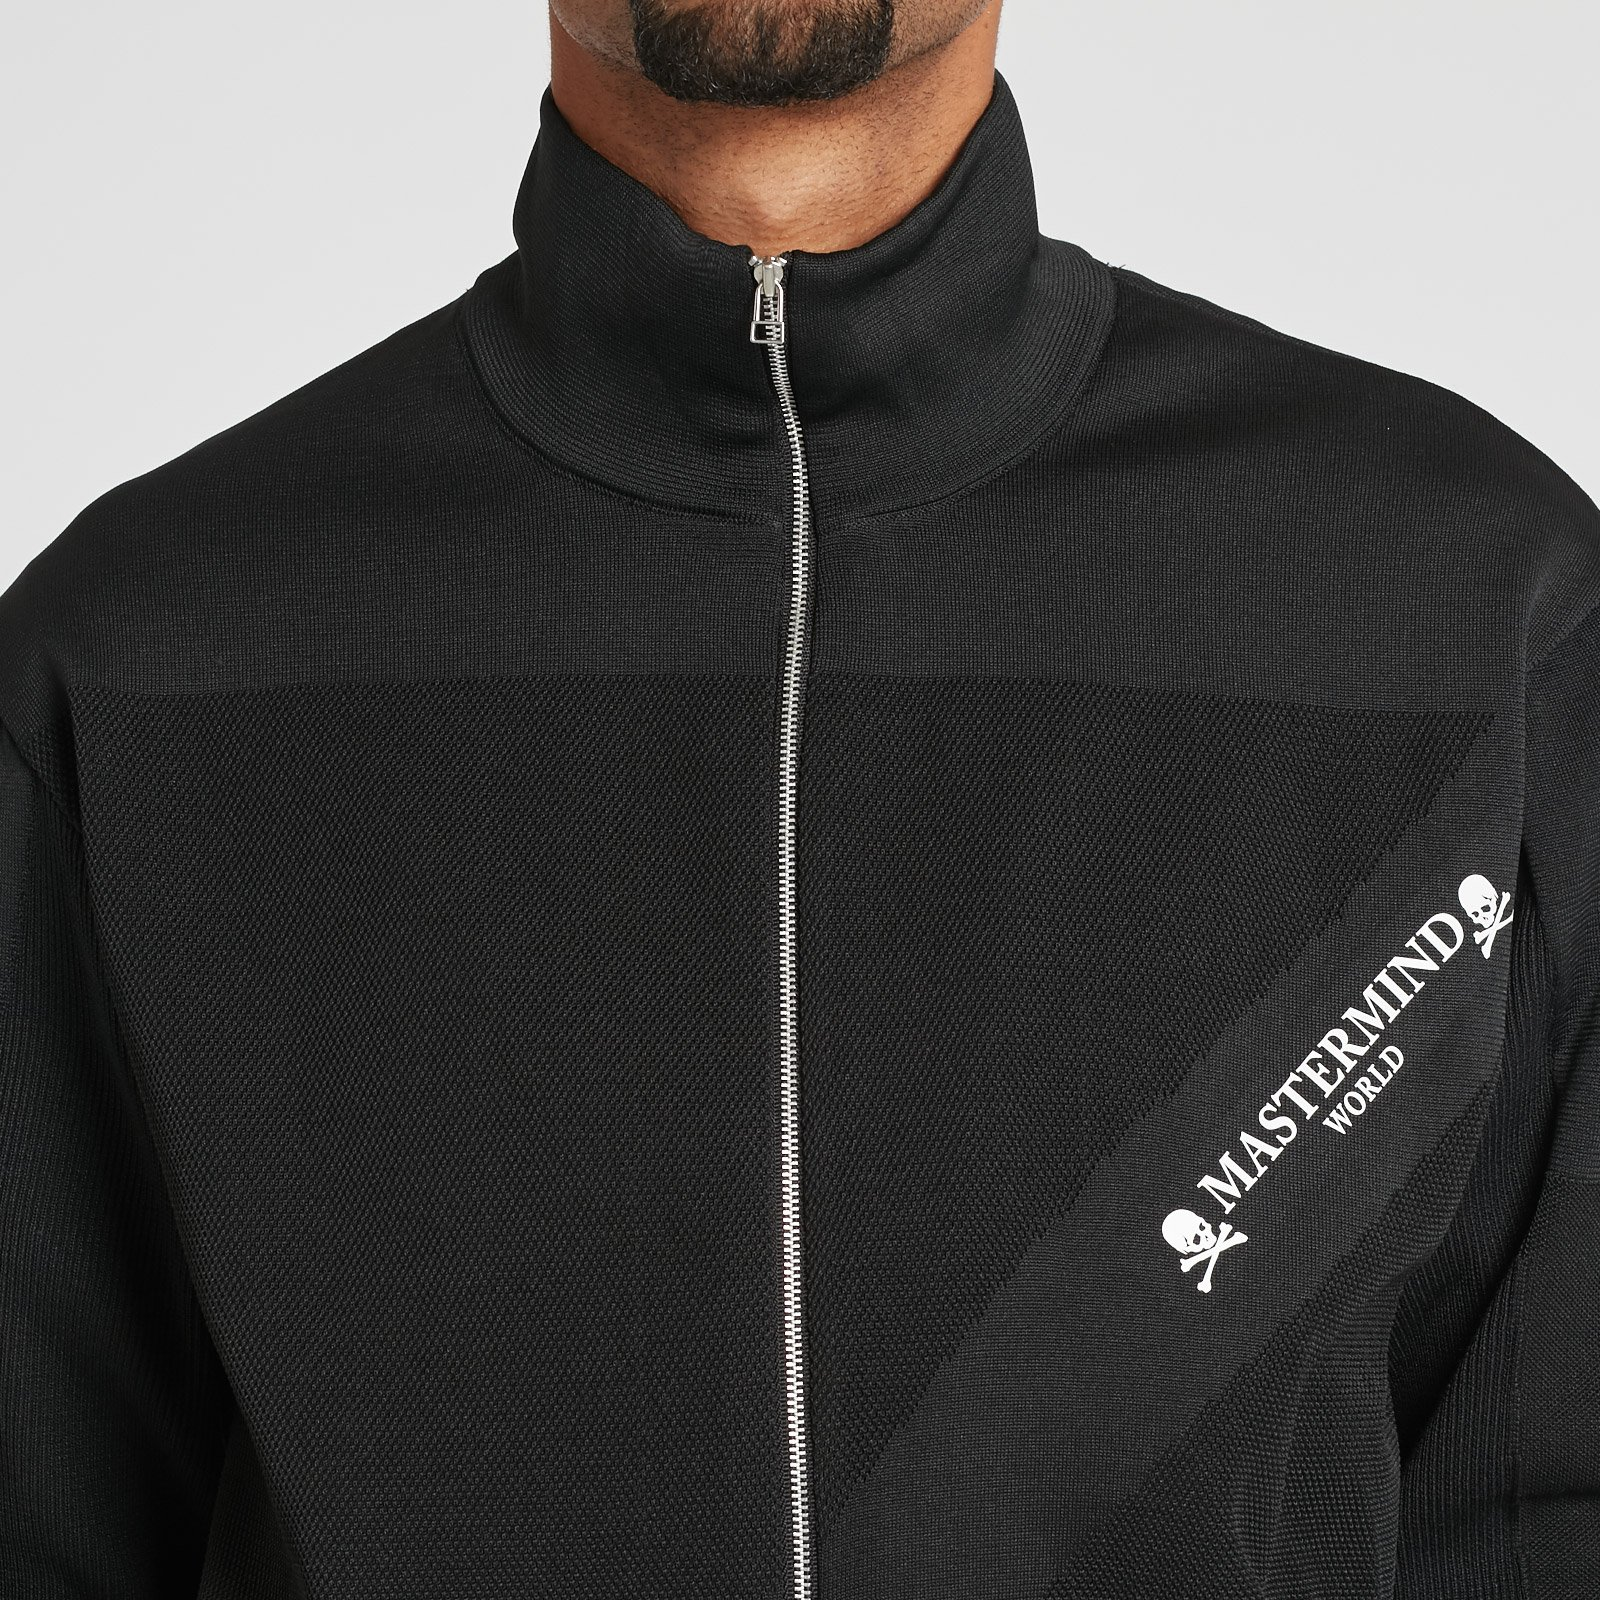 Adidas Track Top By Mastermind World Cg0752 Sneakersnstuff